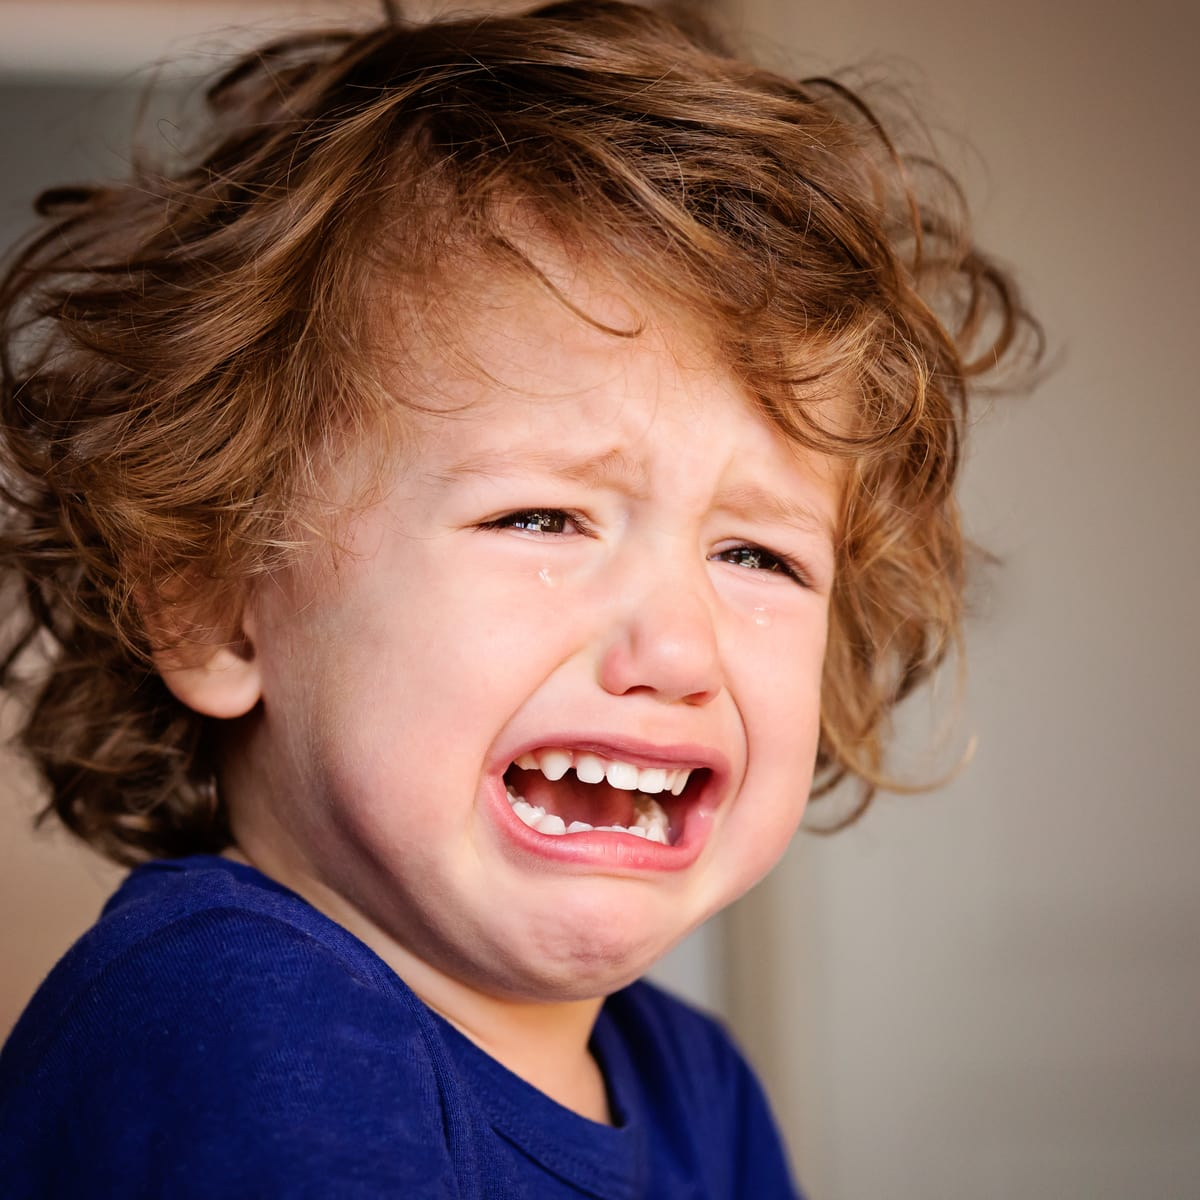 toddler boy in blue shirt with curly hair crying